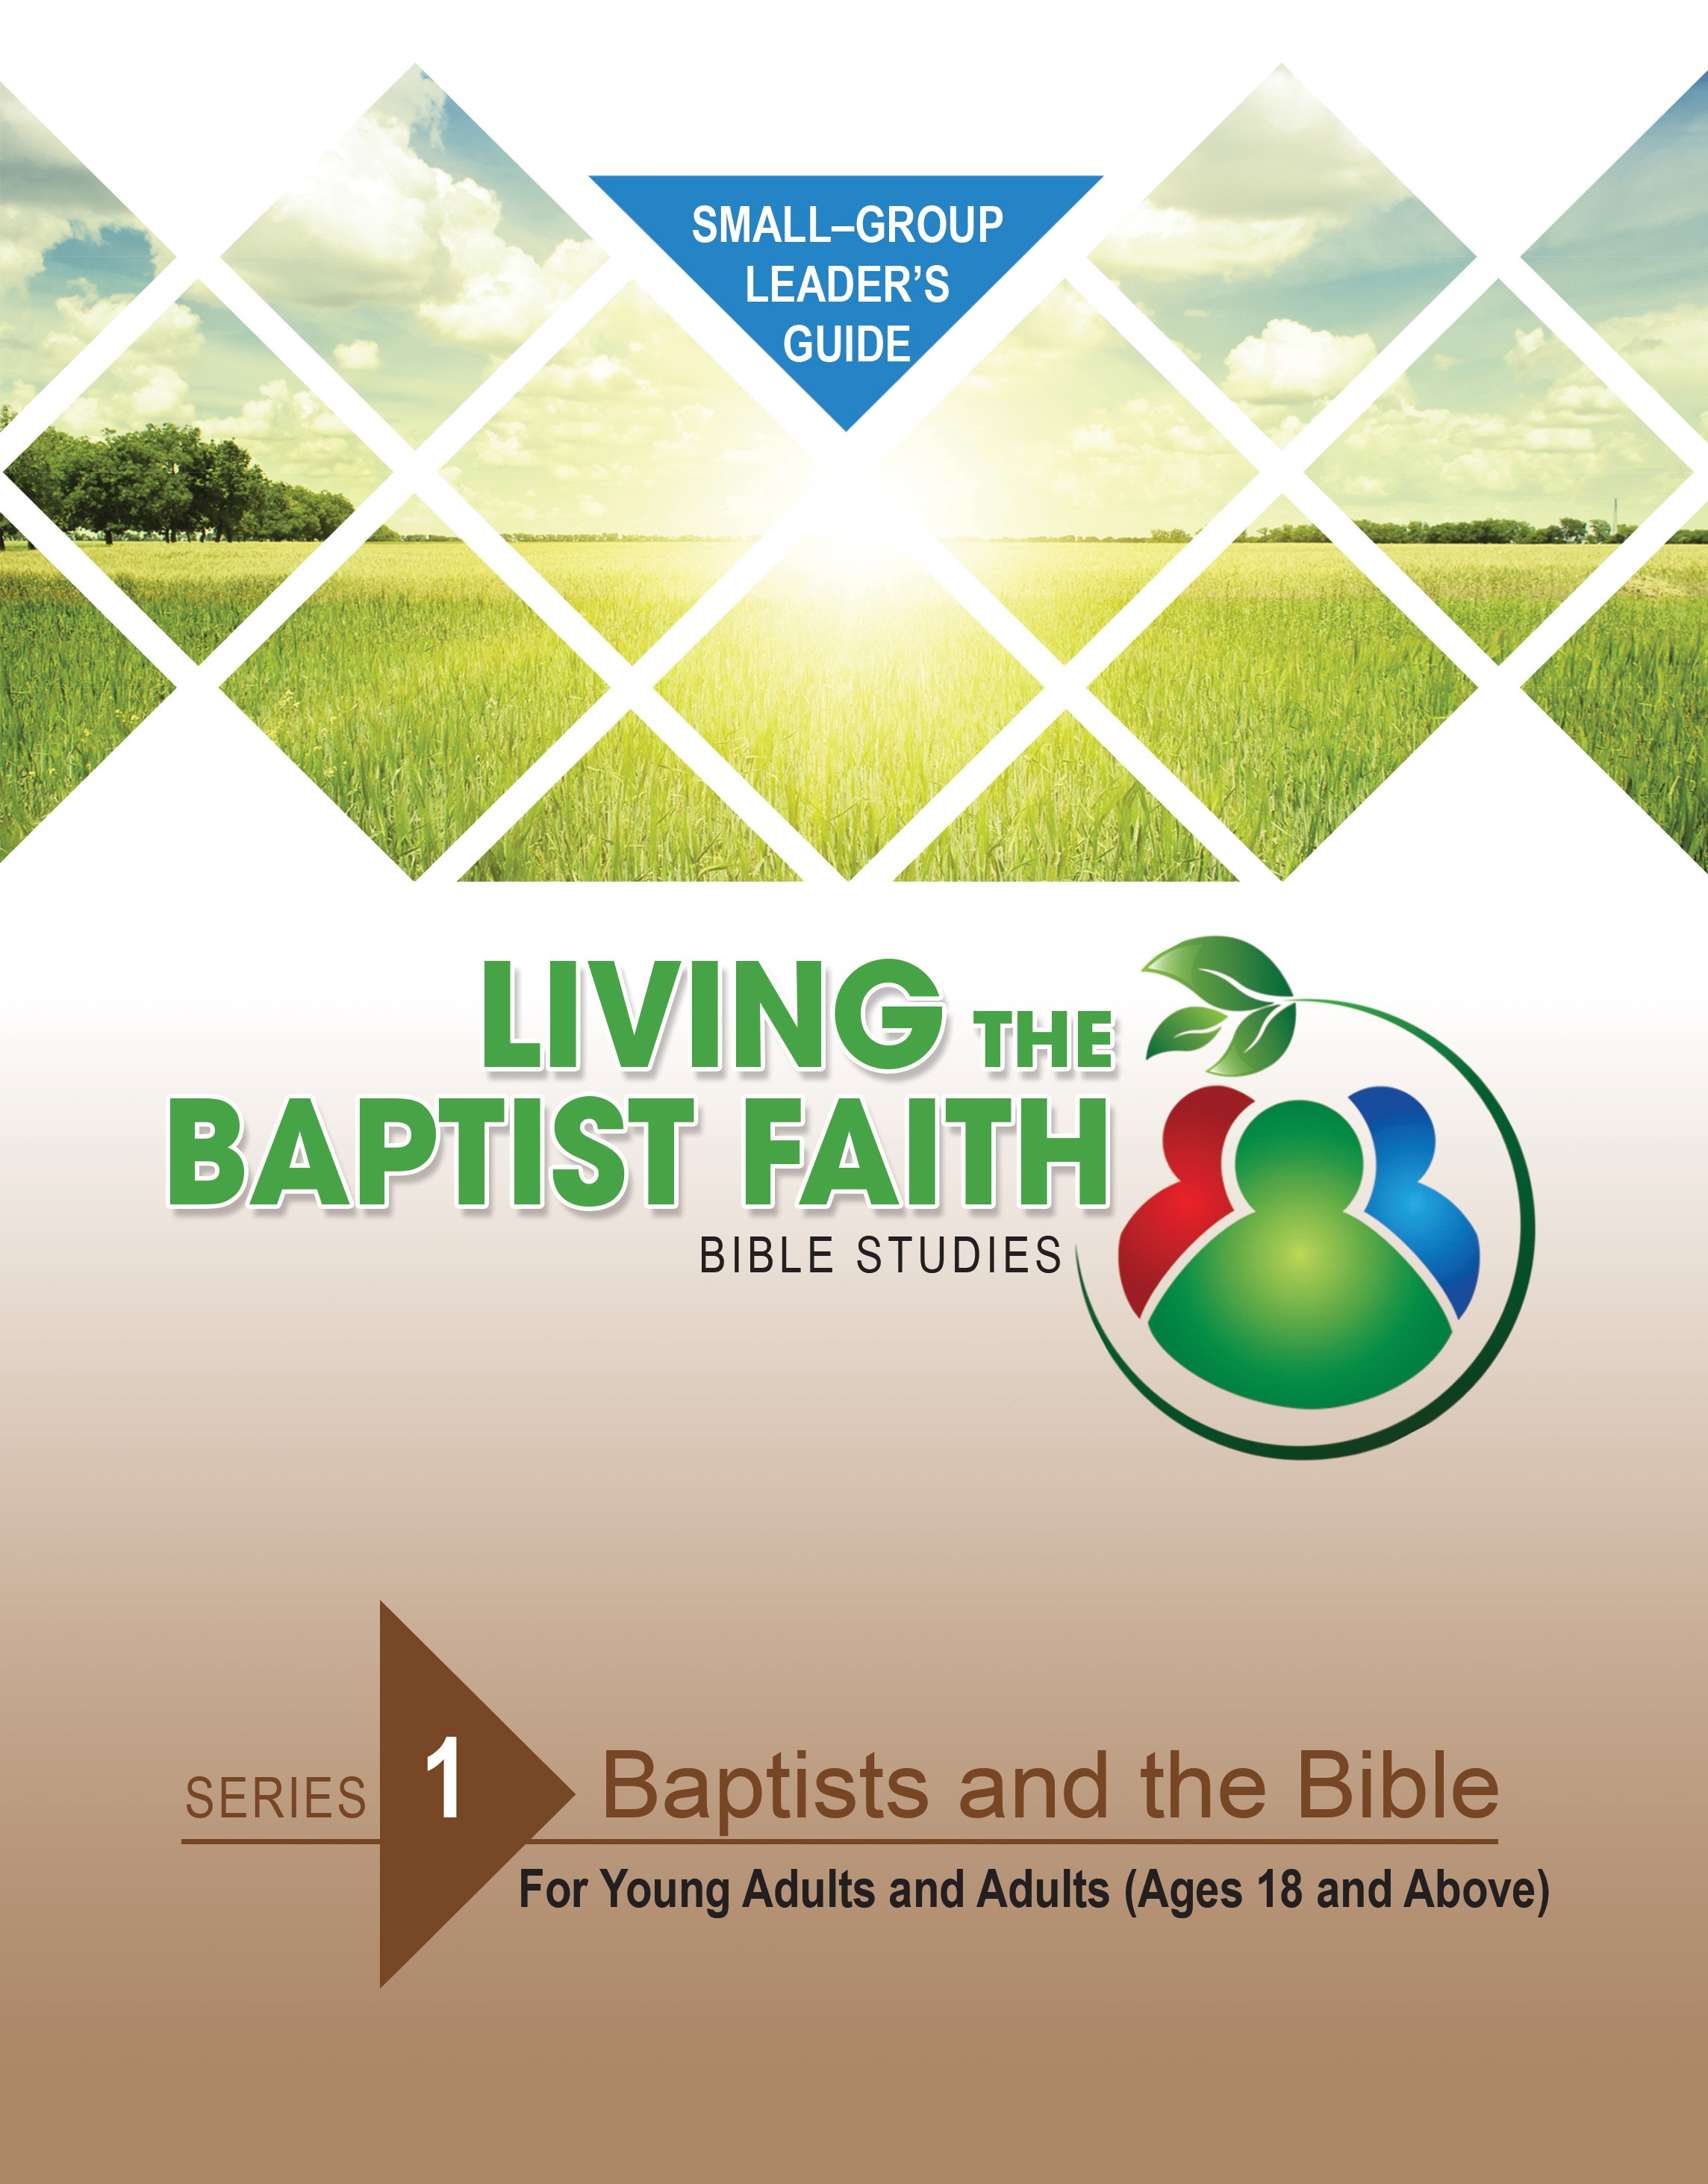 Series 1: Facilitator's Guide for Young Adults and Adults (Ages 18 and Above)